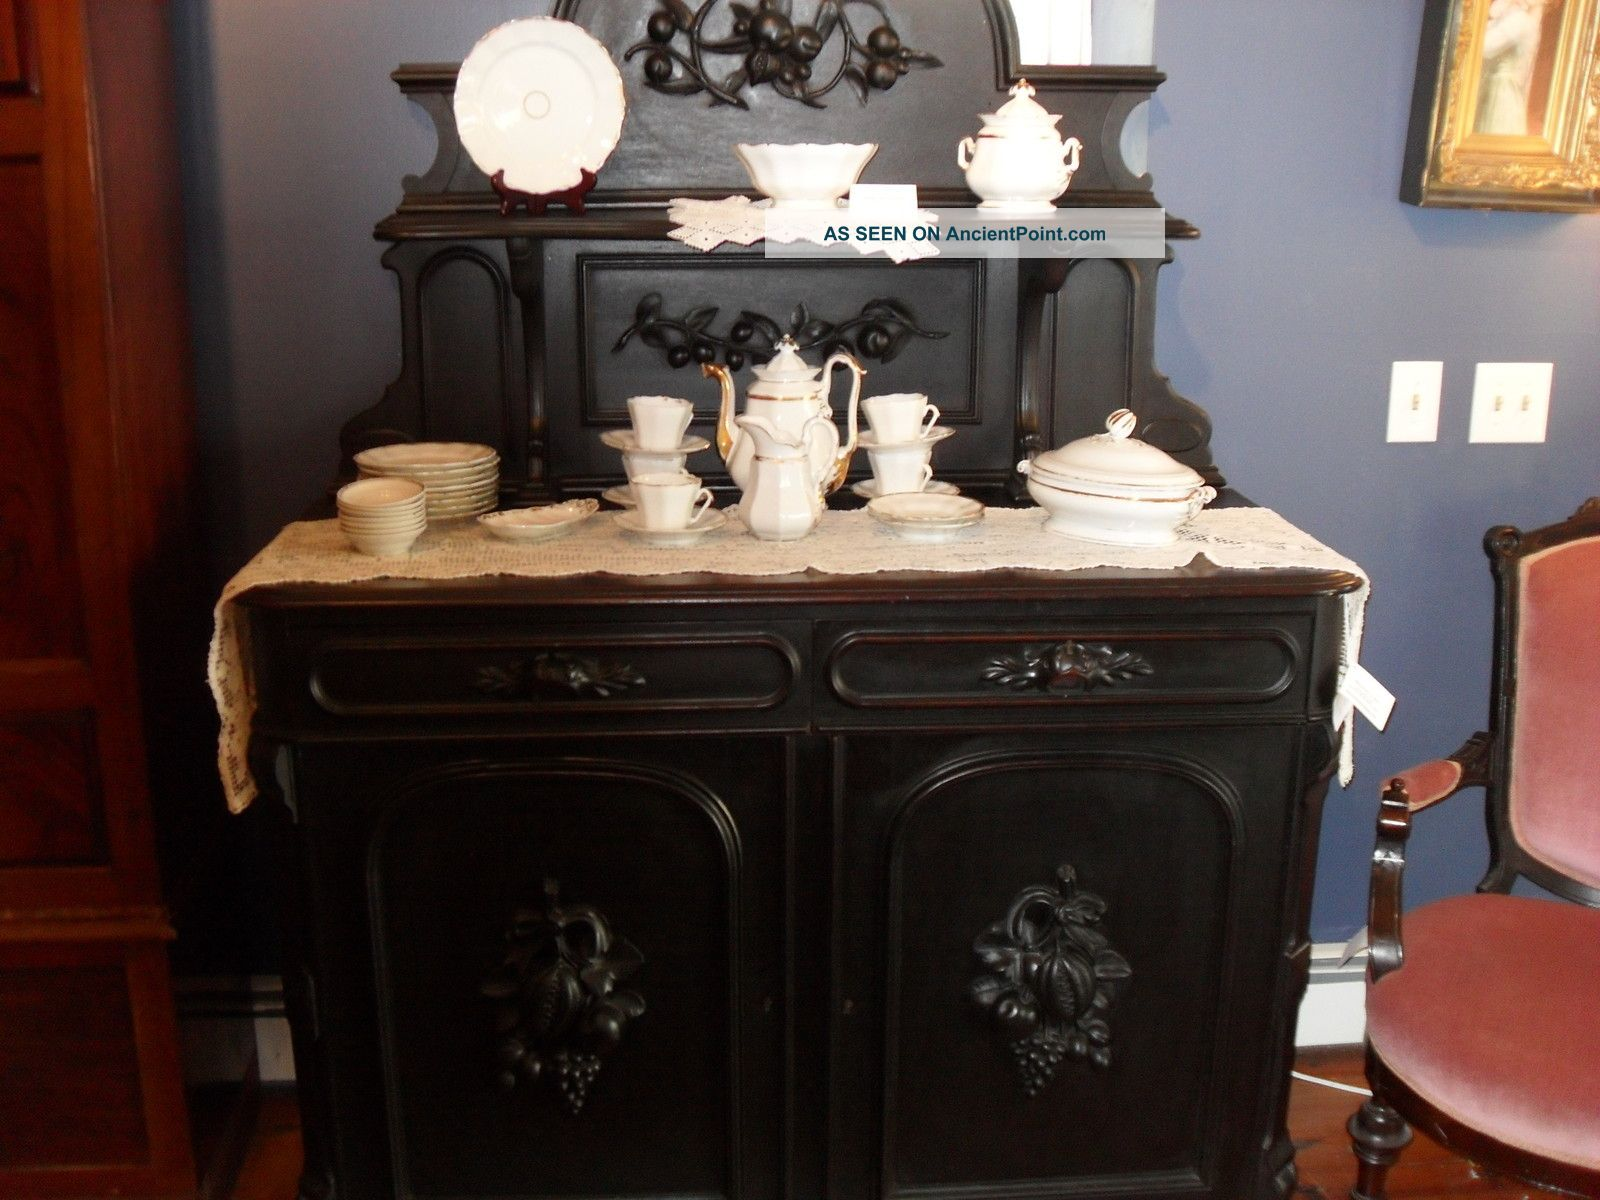 Antique Victorian Sideboard 1800-1899 photo